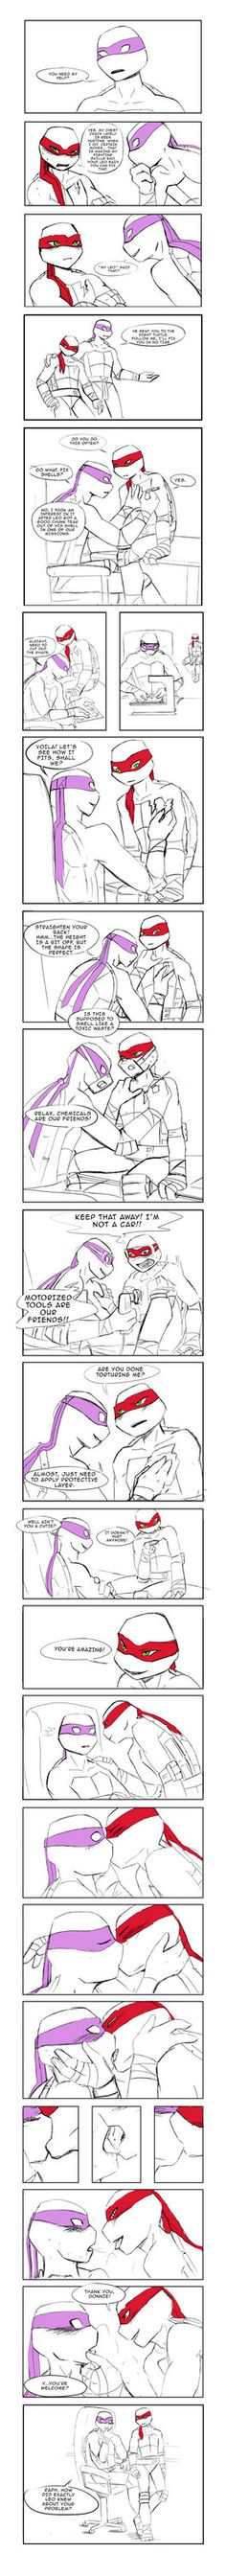 Raph's chest crack smut by NeatTea